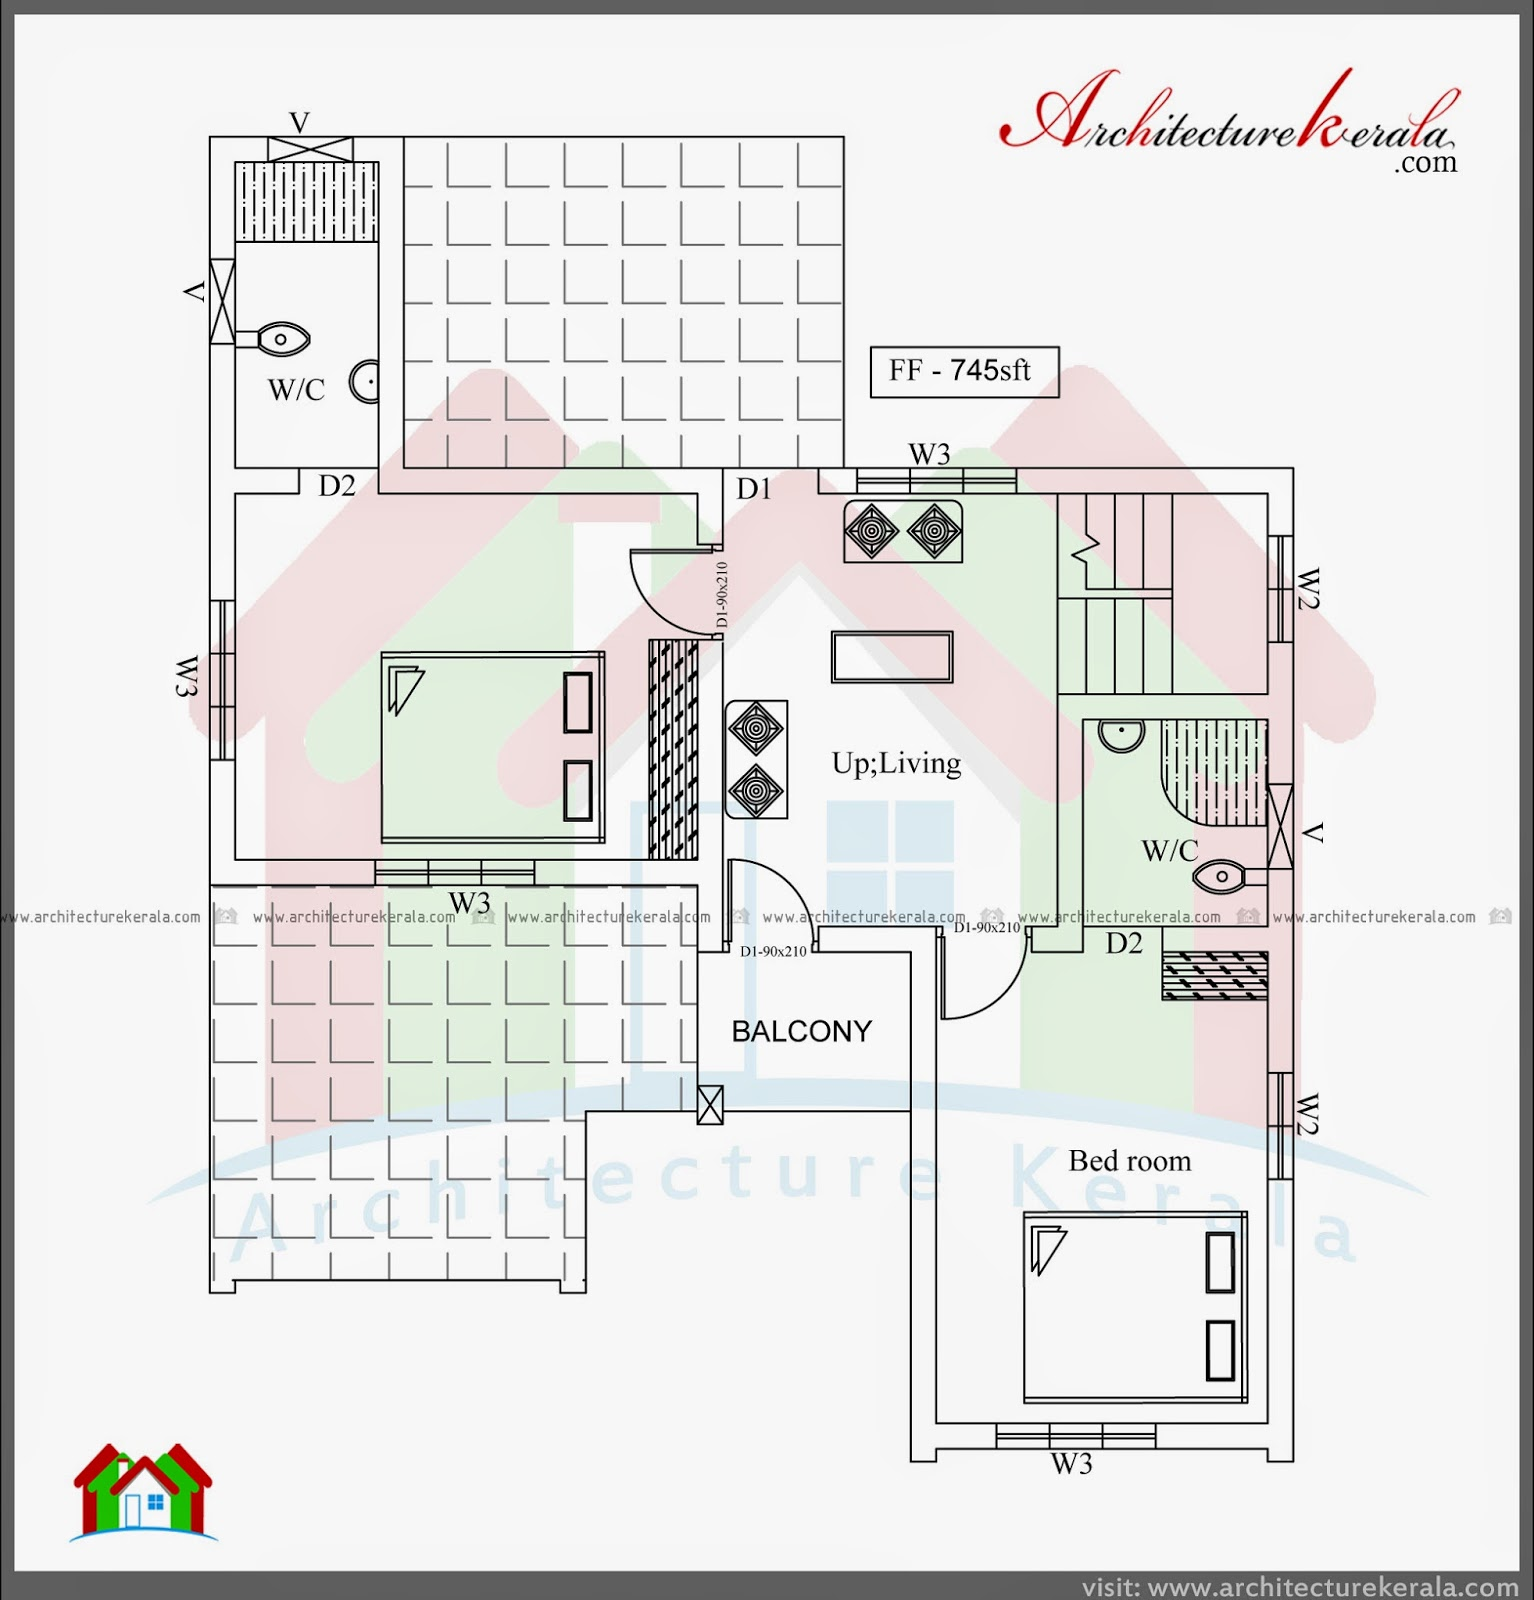 Three bedroom two storey house plan architecture kerala Ground floor 3 bedroom plans